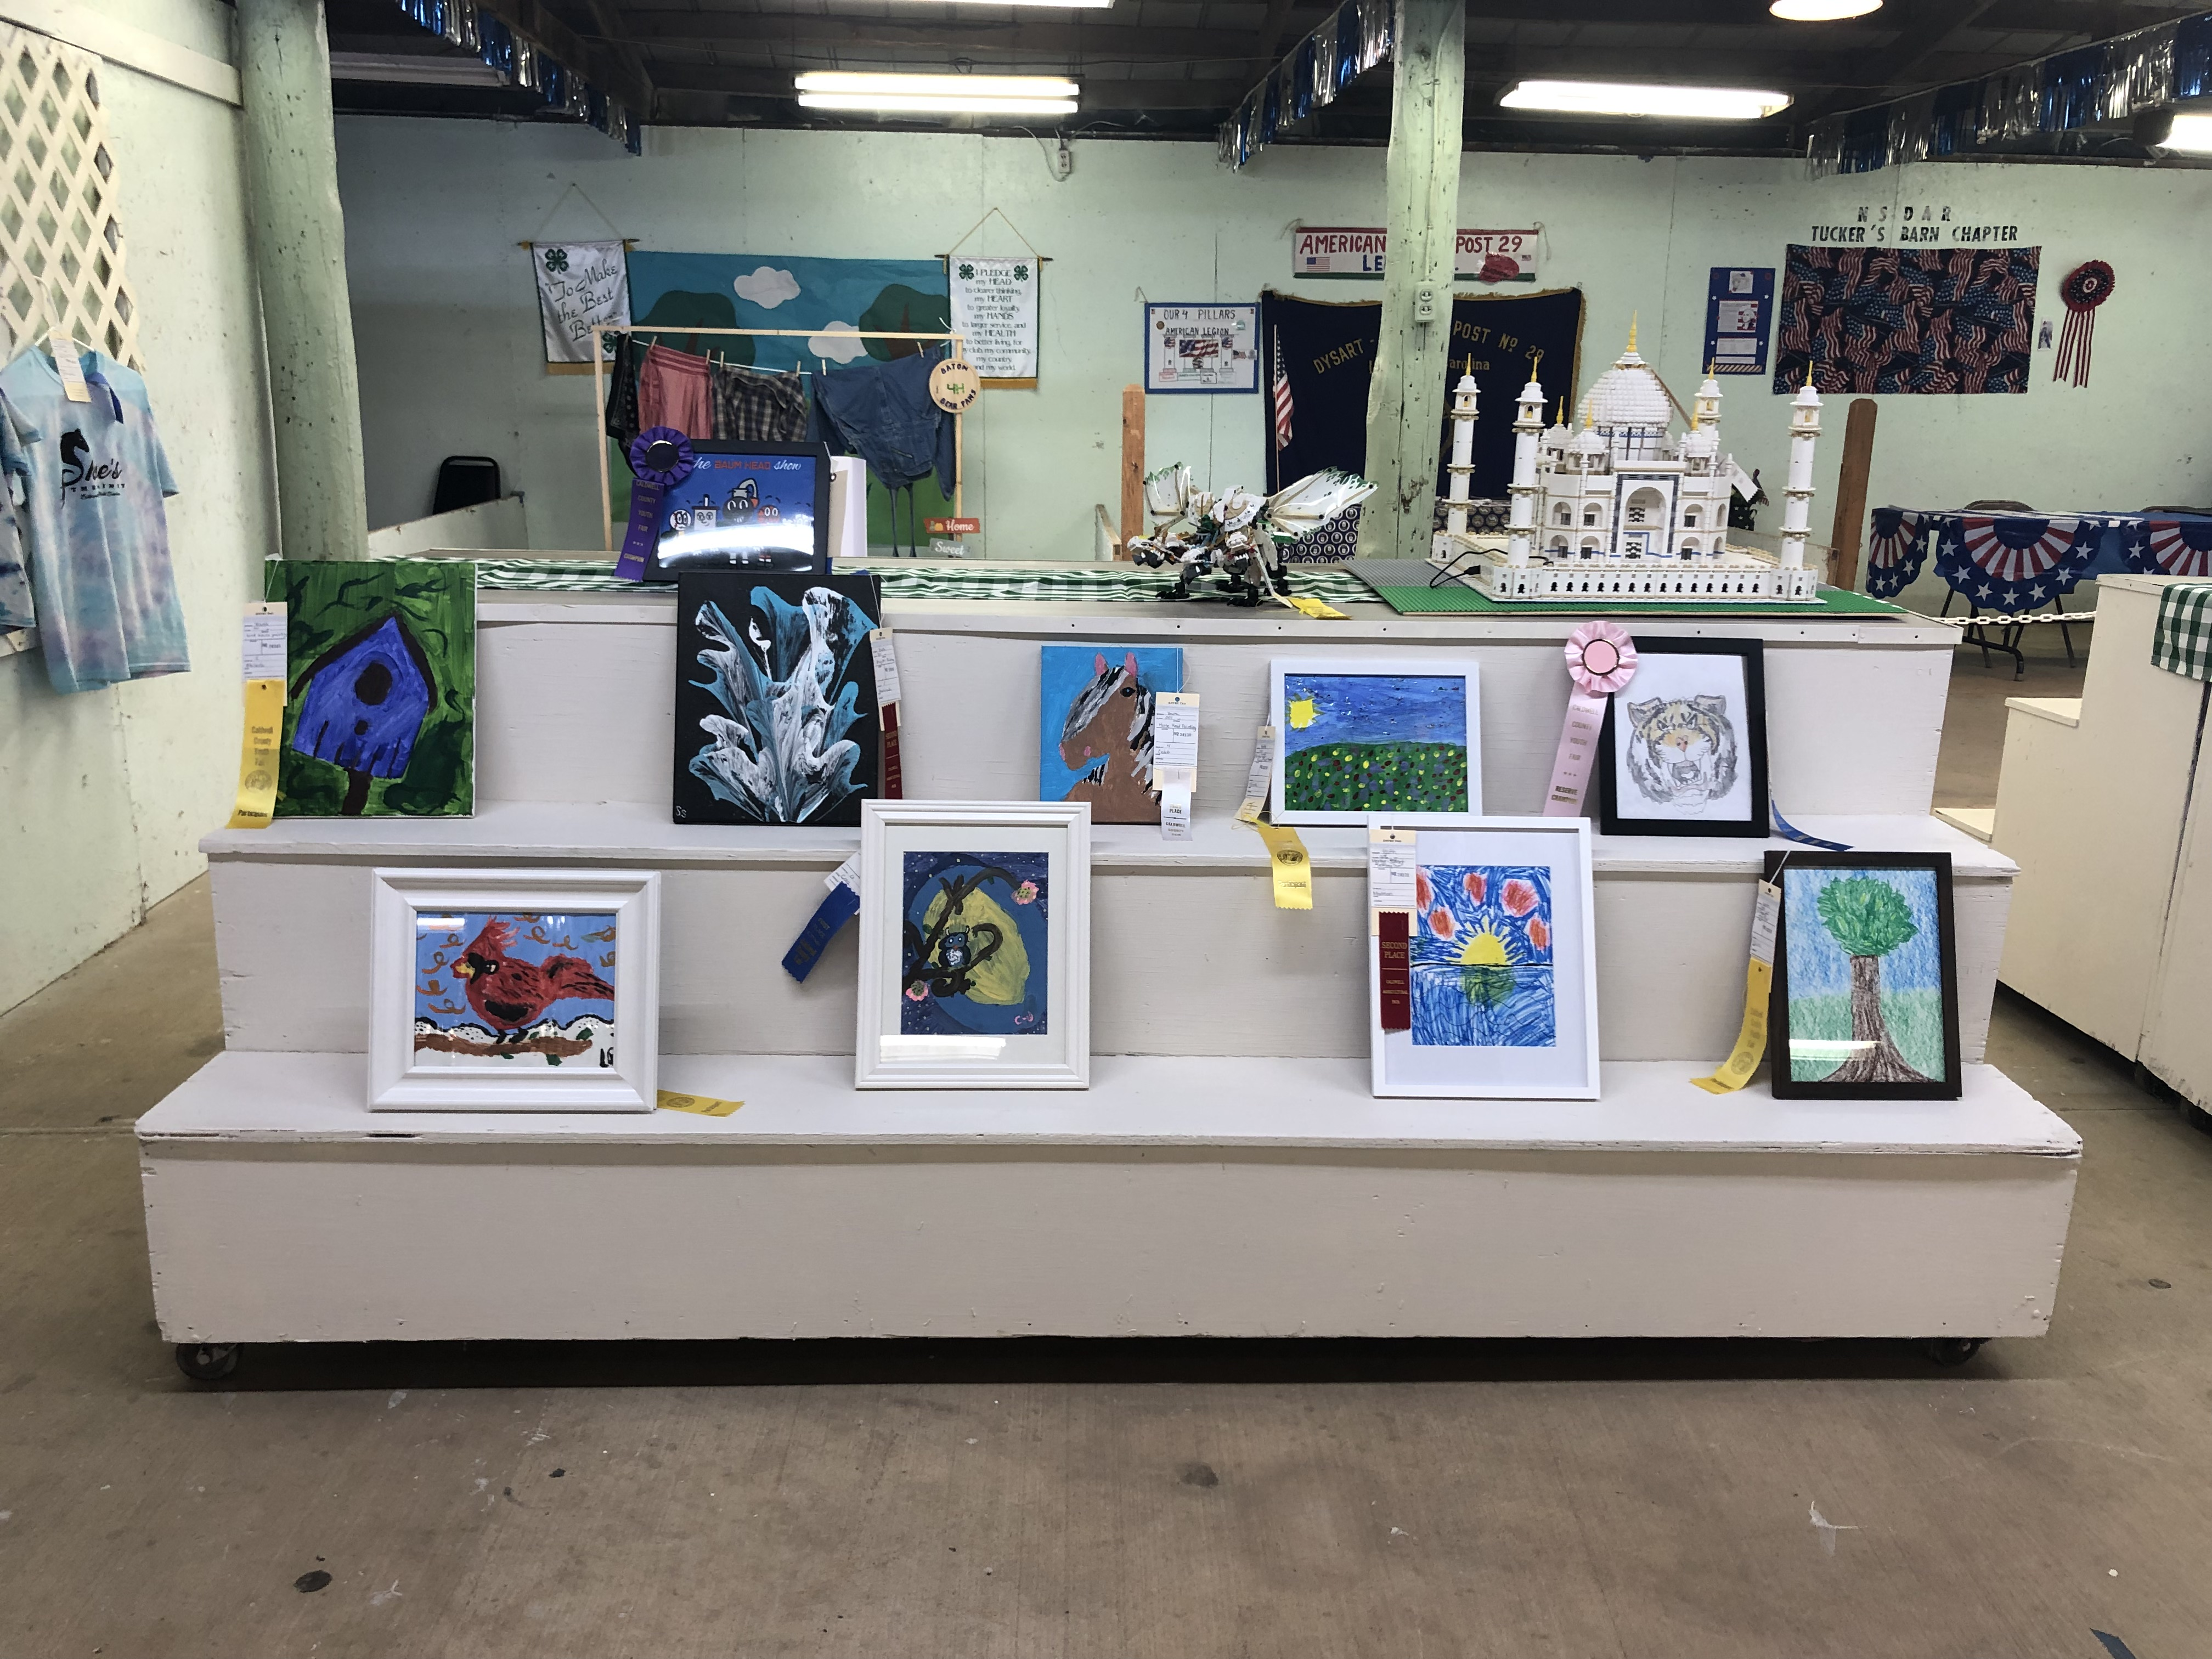 At the fair, youth exhibited works of art including paintings, drawings and ones digitally produced.